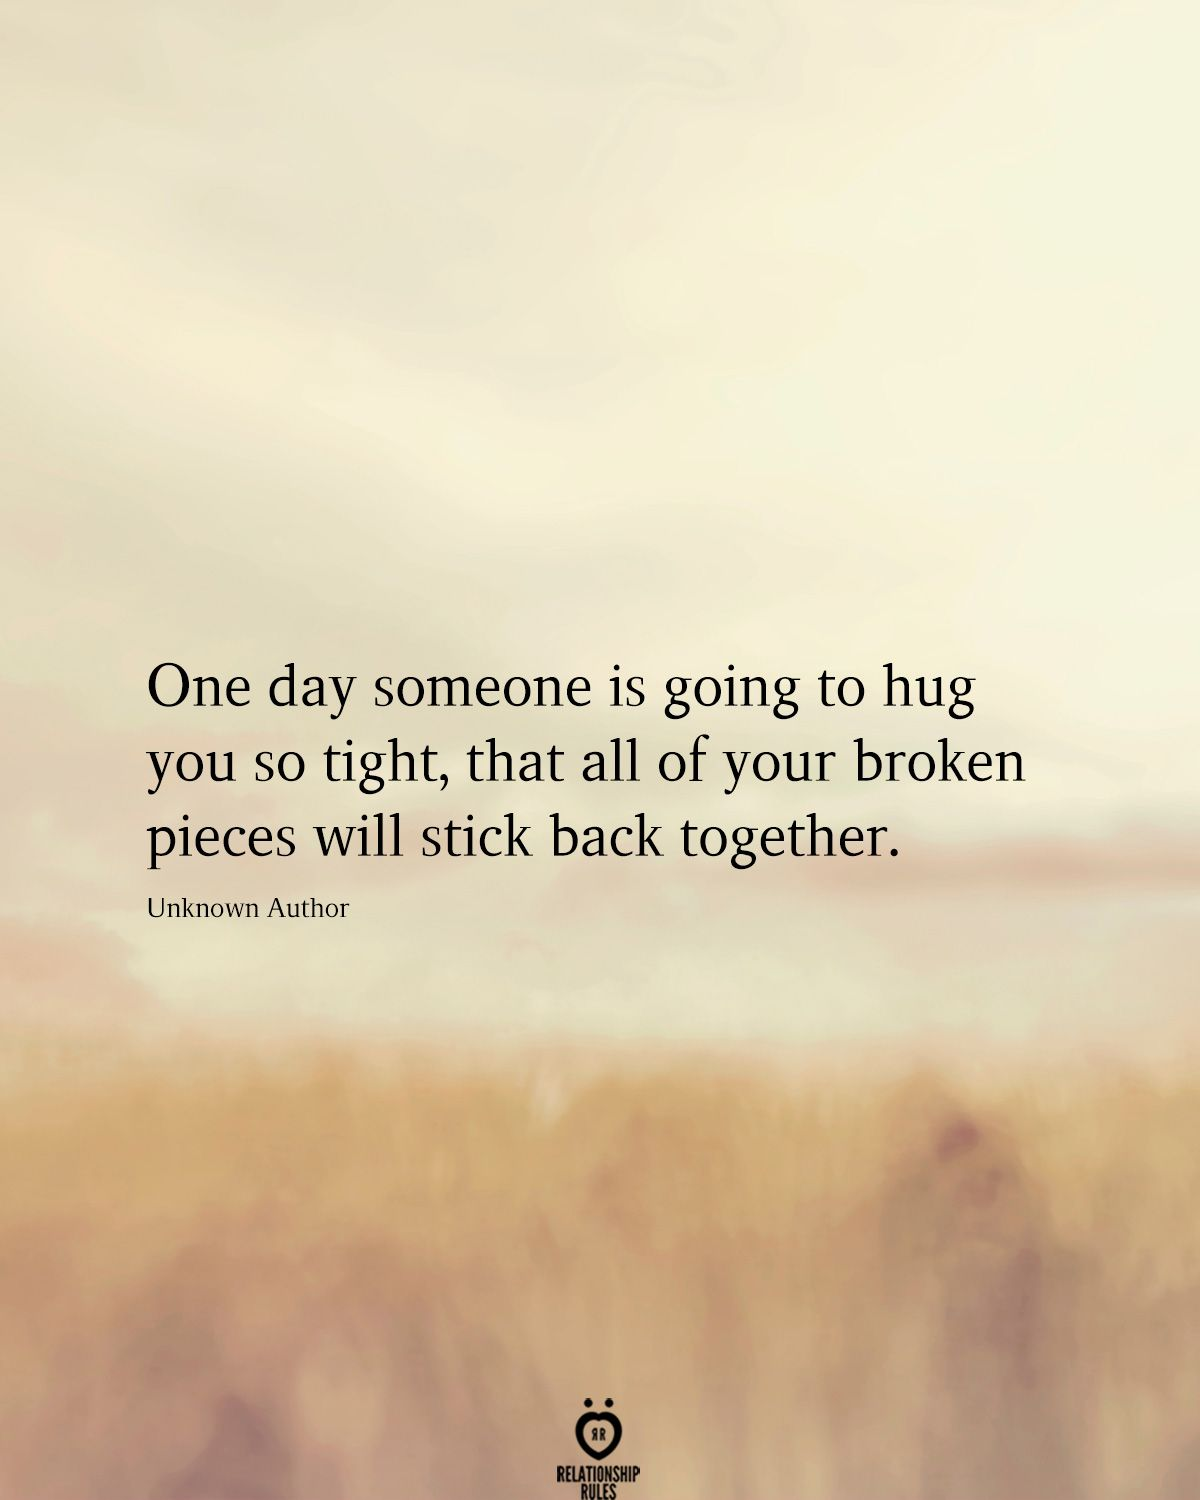 One Day Someone Is Going To Hug You So Tight